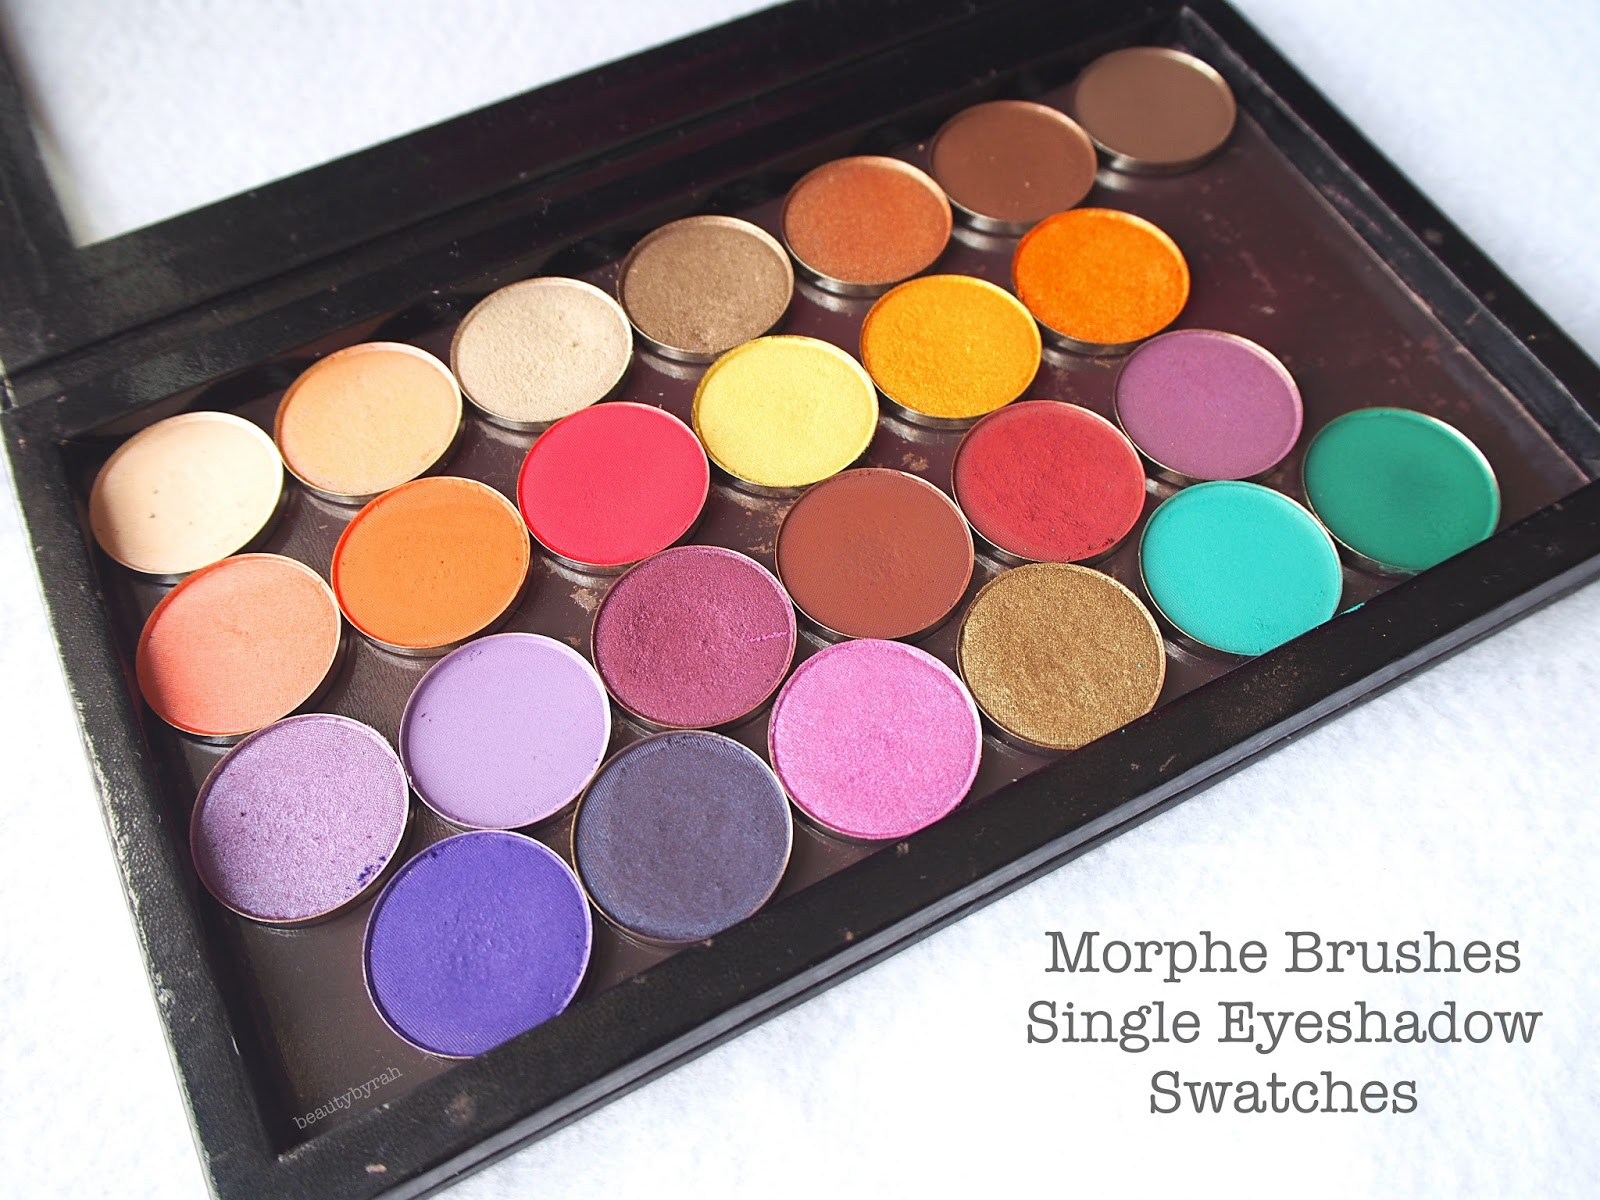 morphe brushes single eyeshadows review and swatches